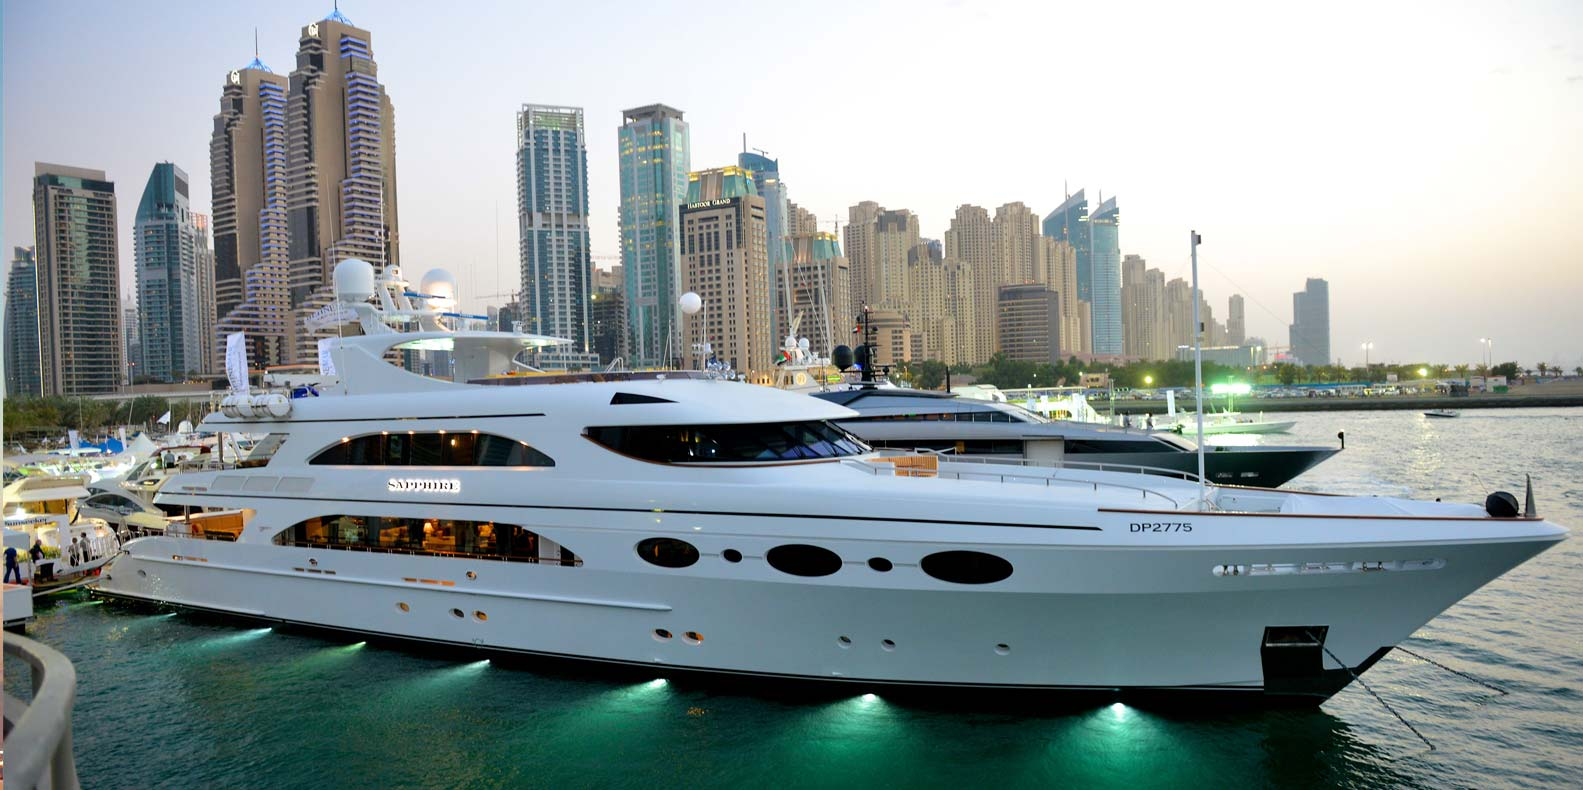 The divine beauty of luxury holidays in dubai welgrow for Luxury holidays in dubai